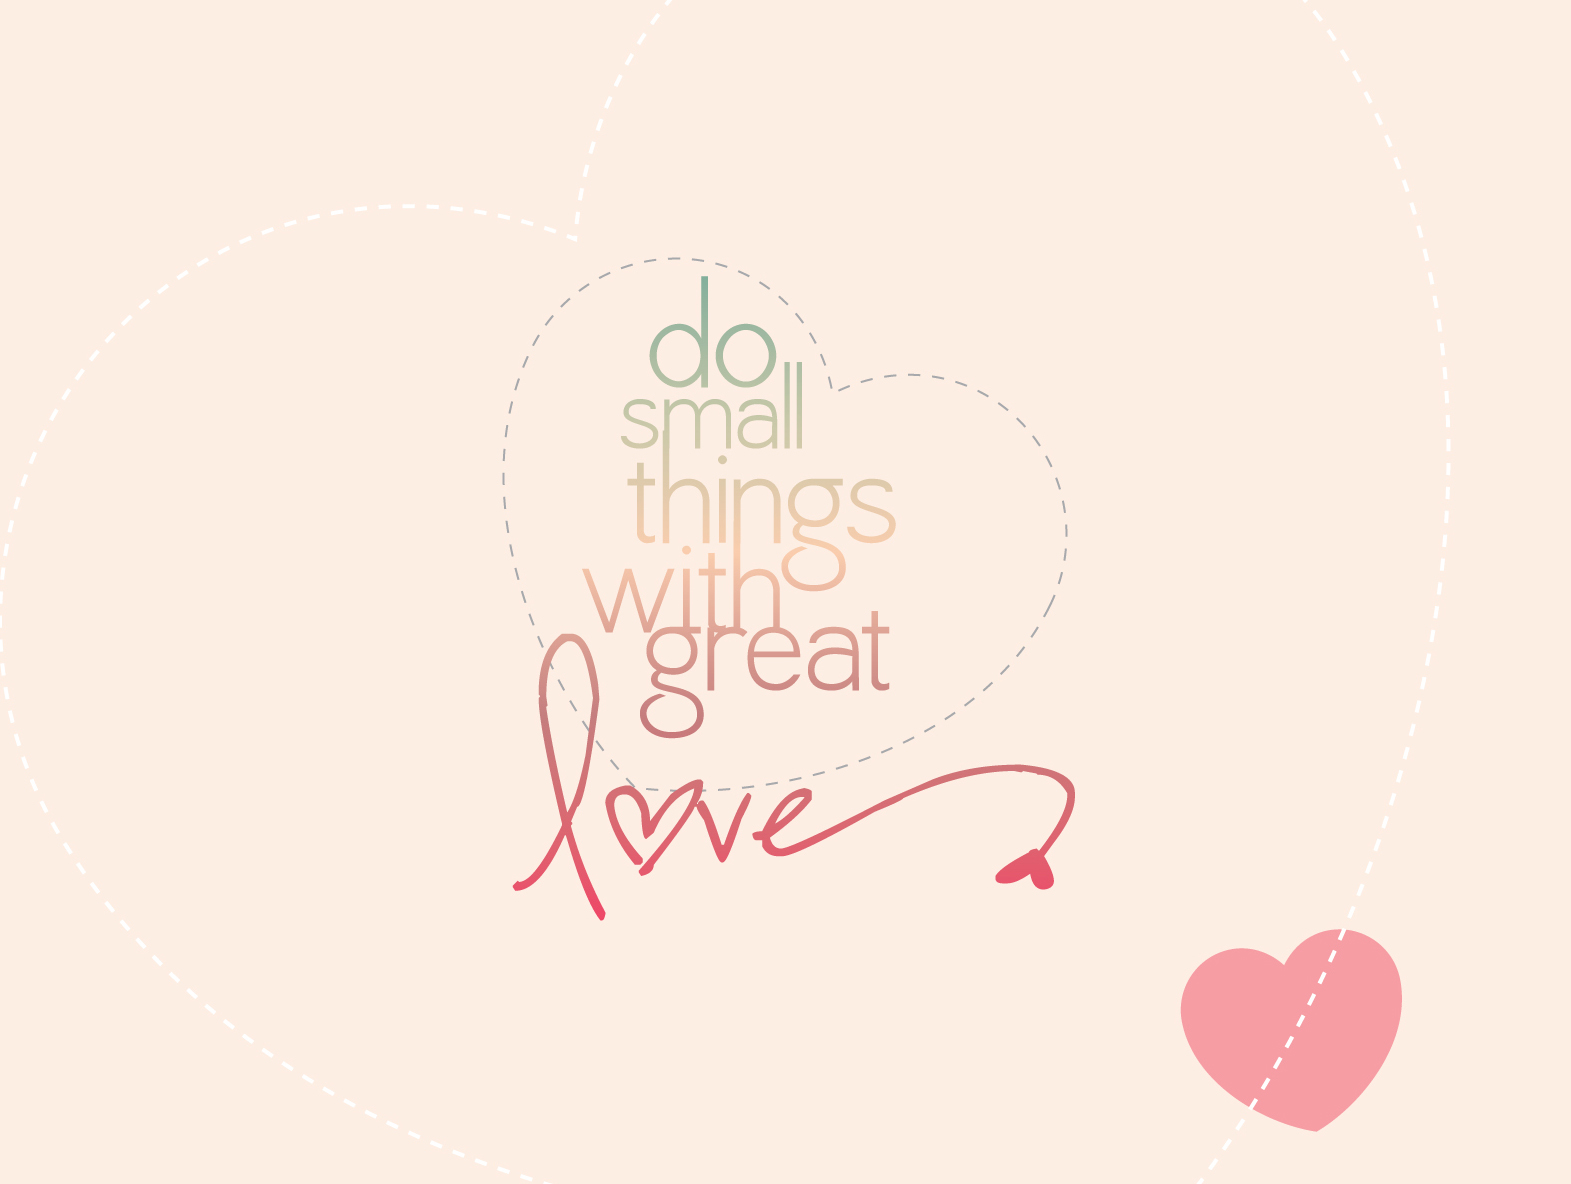 Love Quotes Girly Wallpaper : Agape Love Designs: Do Small Things With Great Love